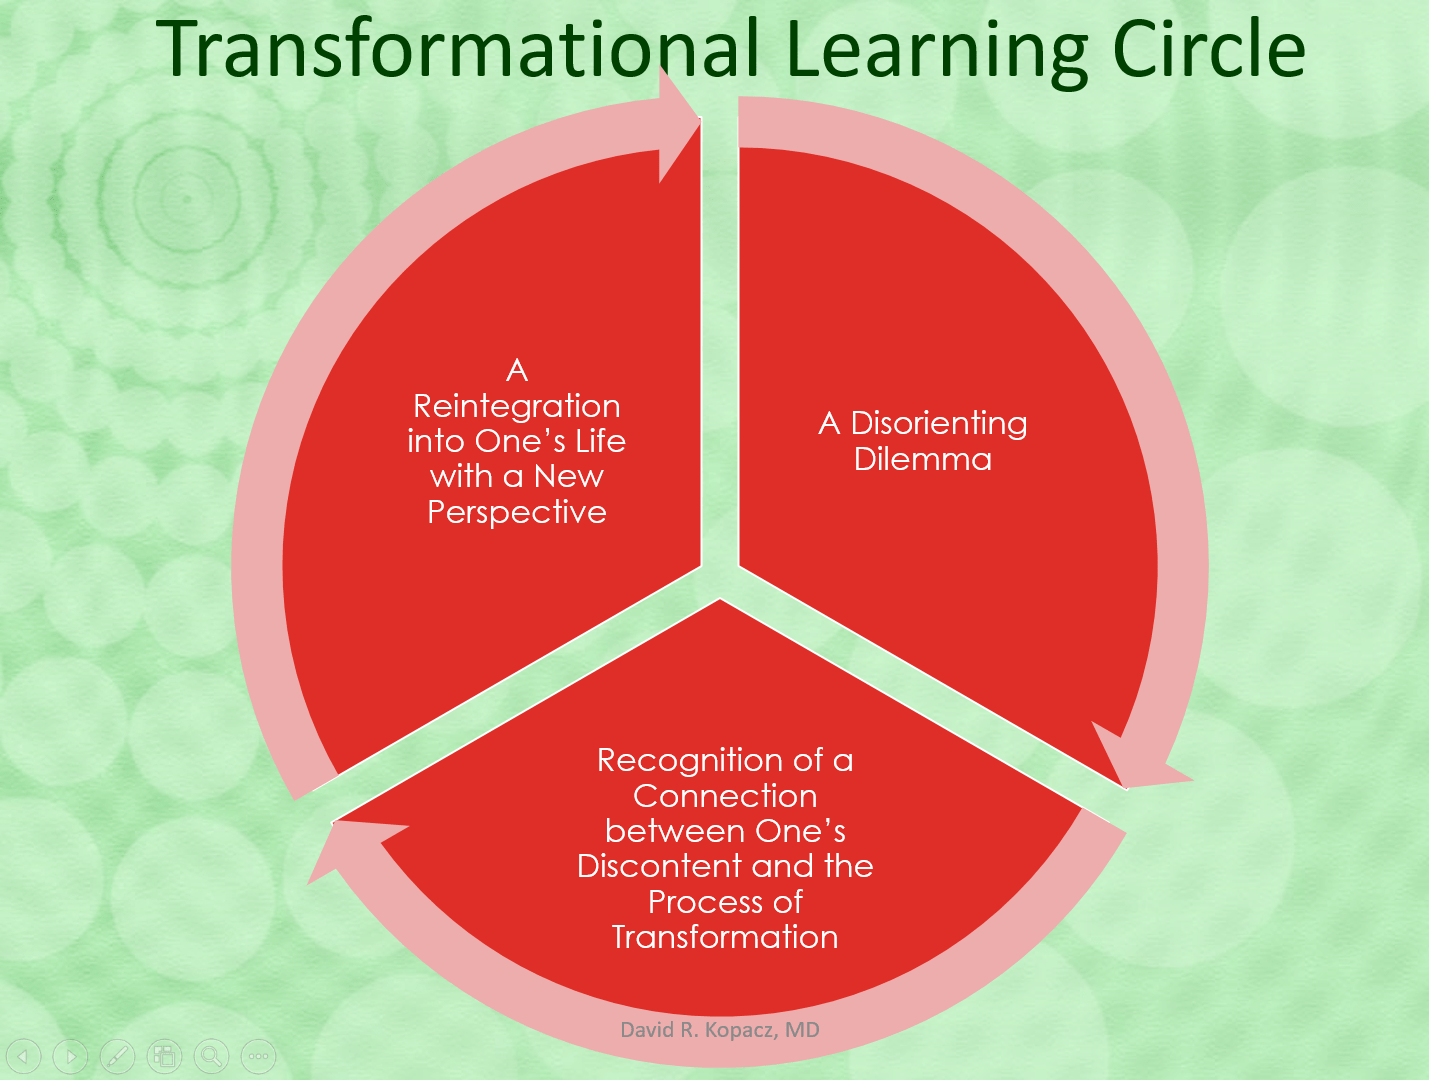 transformational-learning-circle-e1507316685980.png